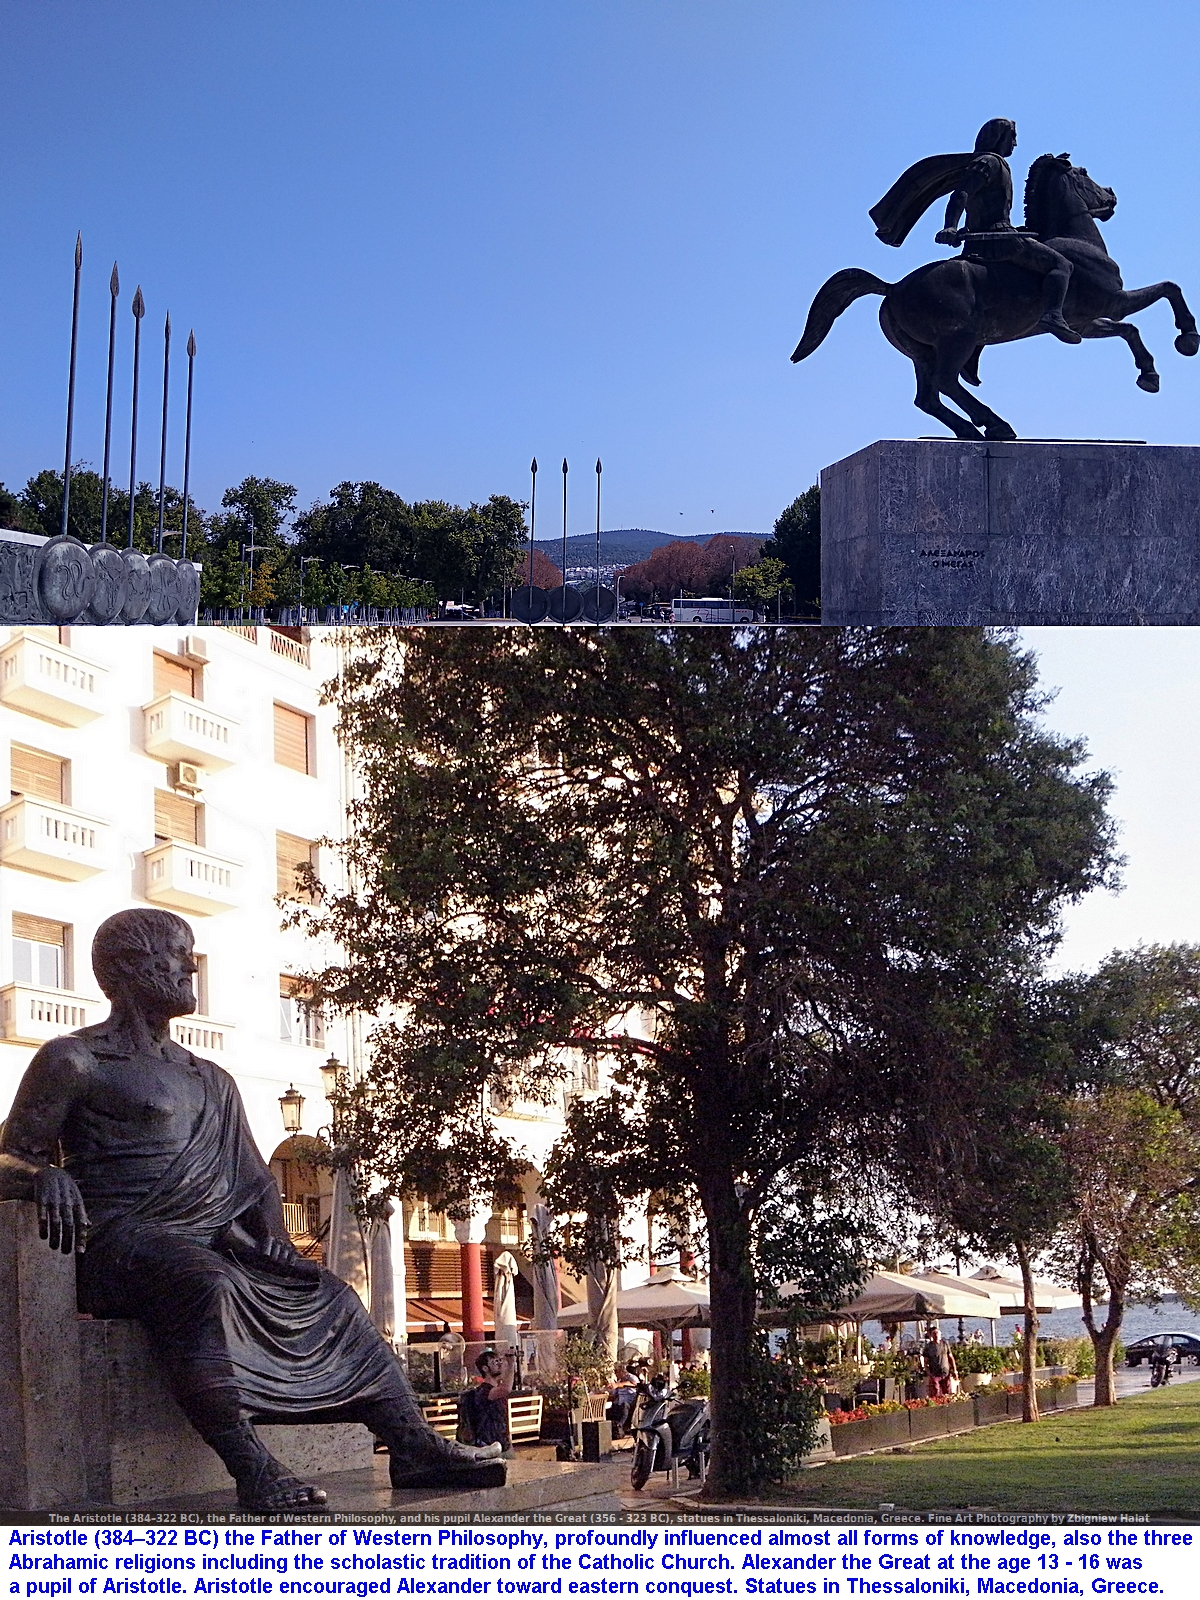 The Aristotle (384–322 B.C.), the Father of Western Philosophy, and his pupil Alexander the Great (356 - 323 B.C.), statues in Thessaloniki, Macedonia, Greece. Fine Art Photography by Zbigniew Halat